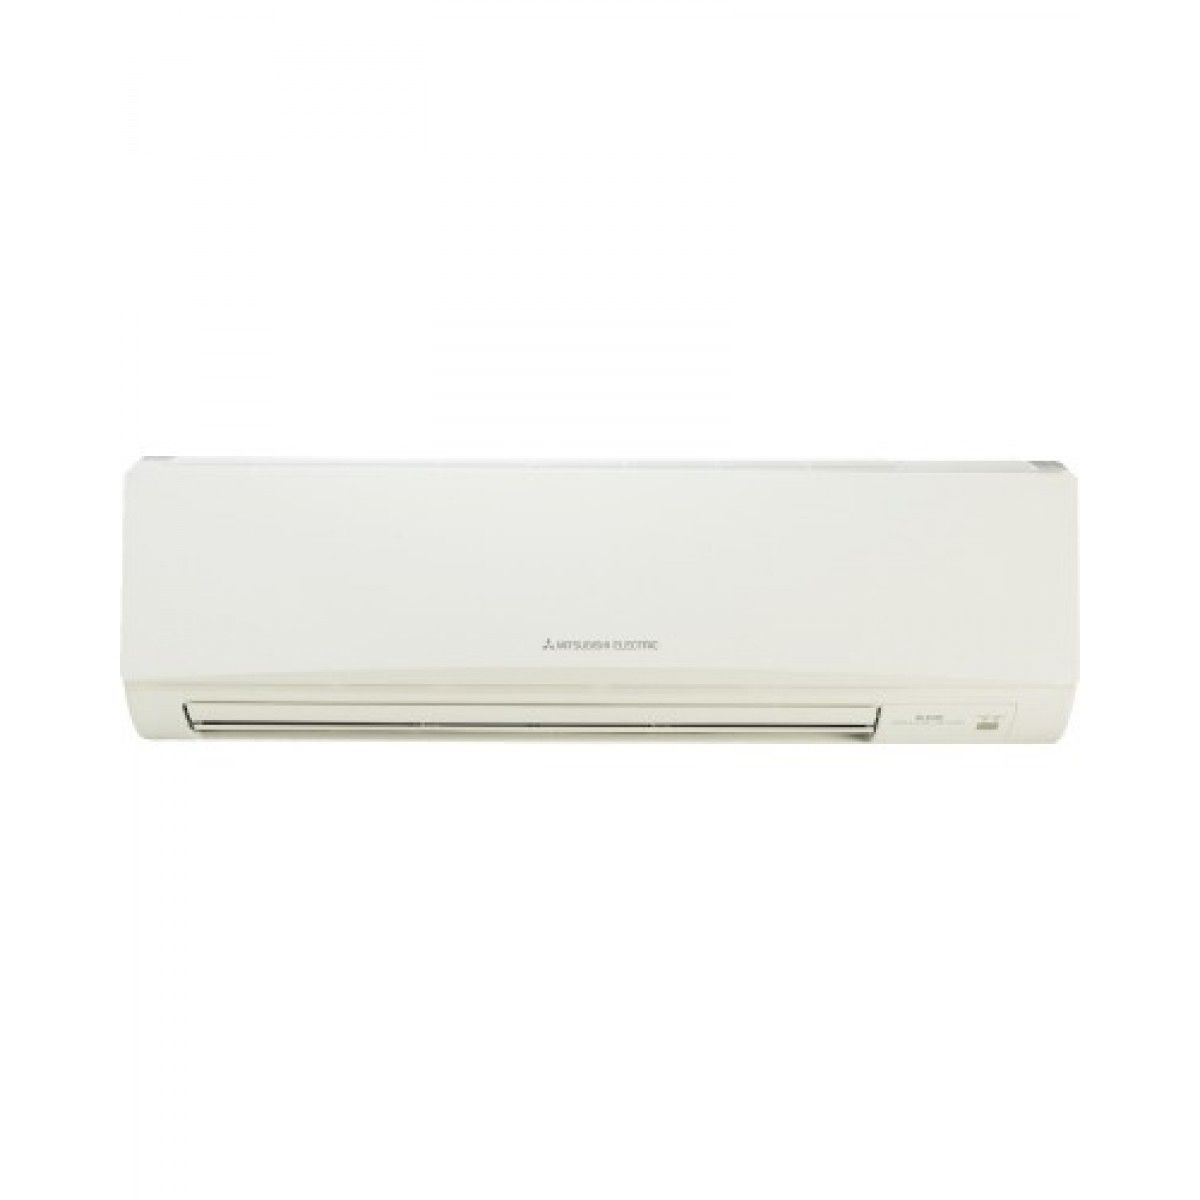 #767655 Mitsubishi Mr. Slim 30 000 BTU Heat Pump Ductless Mini  Recommended 5277 Mini Split System Mitsubishi pics with 1200x1200 px on helpvideos.info - Air Conditioners, Air Coolers and more